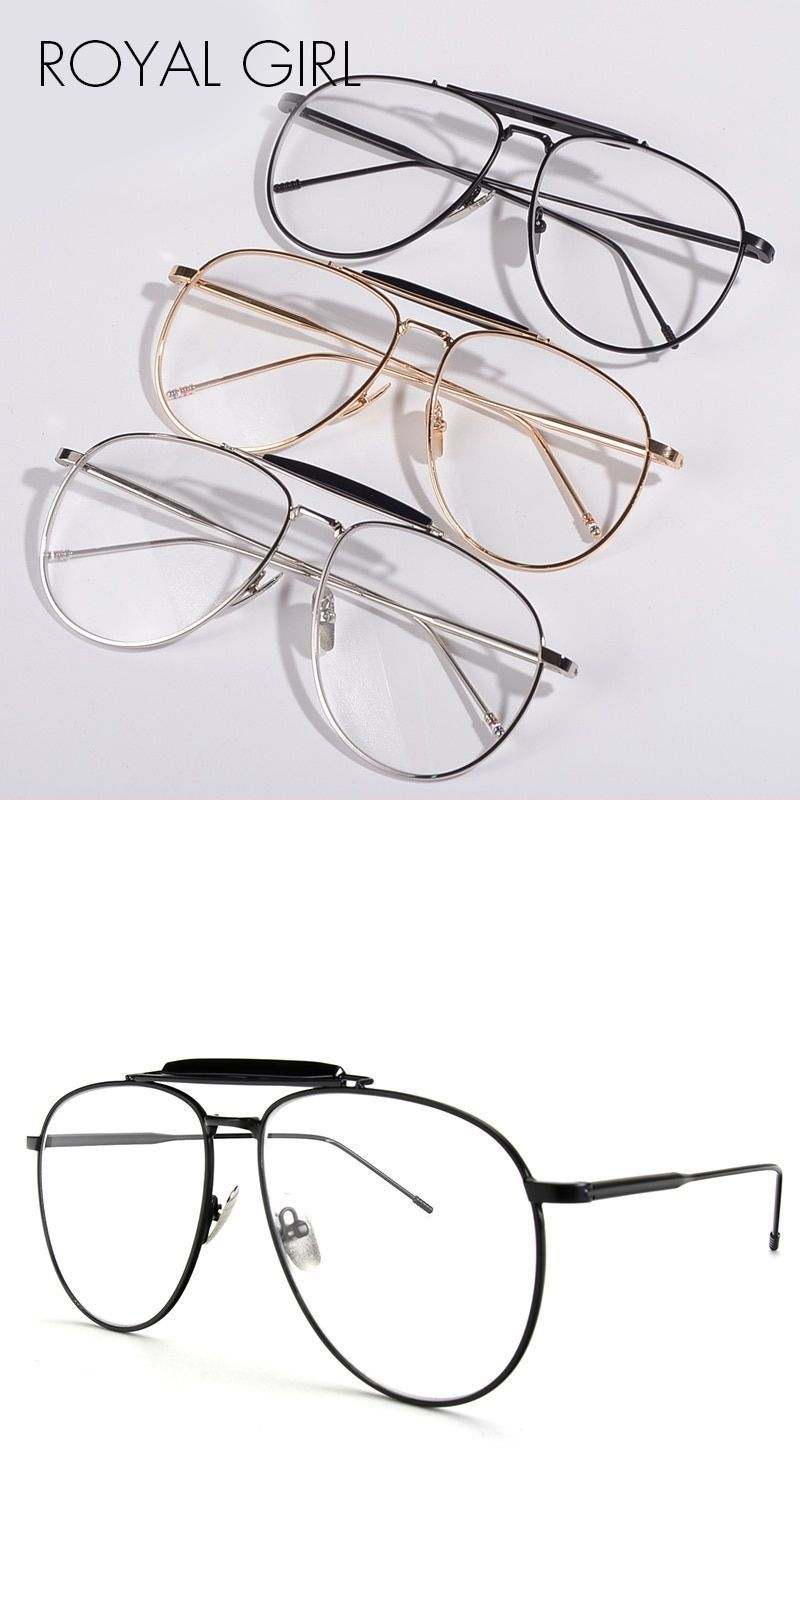 ecd797704f Women chic eyeglasses frames vintage clear lens glasses plain glasses men  oculos femininos gafas ss018  sunglasses  eyewear  unisex  pilot  uv400 ...